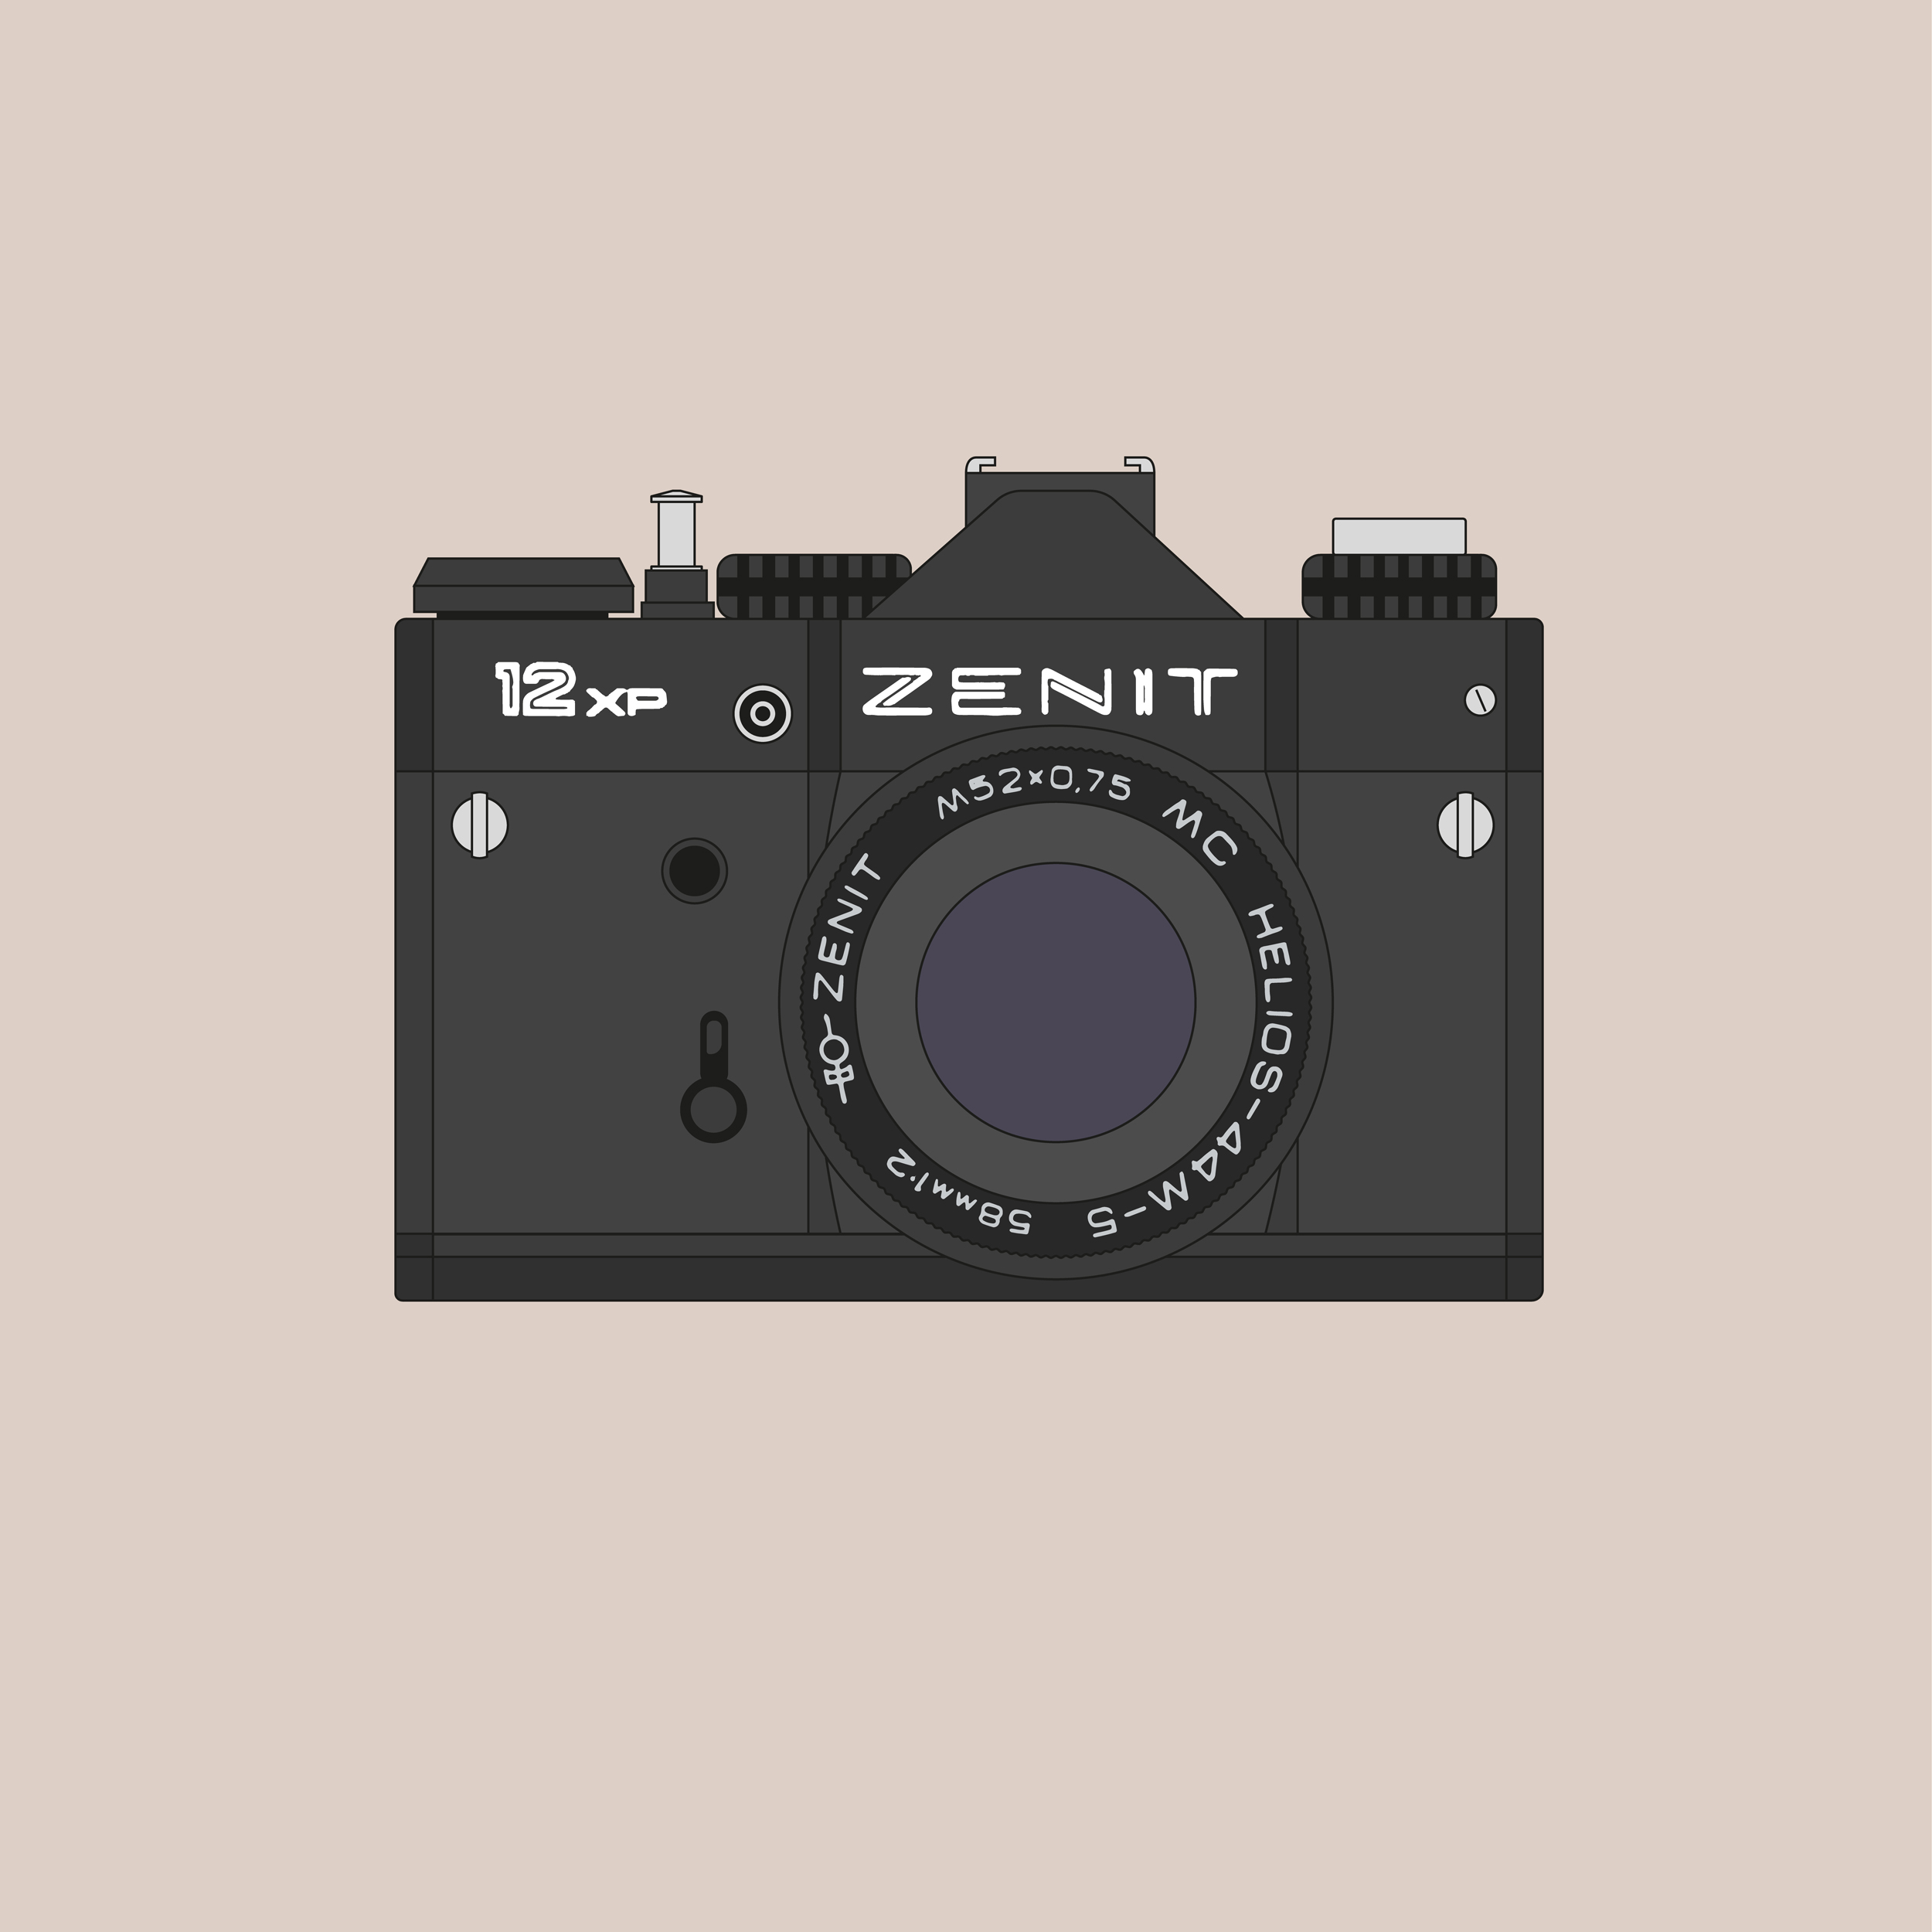 Zenit-12Xp (Graphic: David Ortiz)